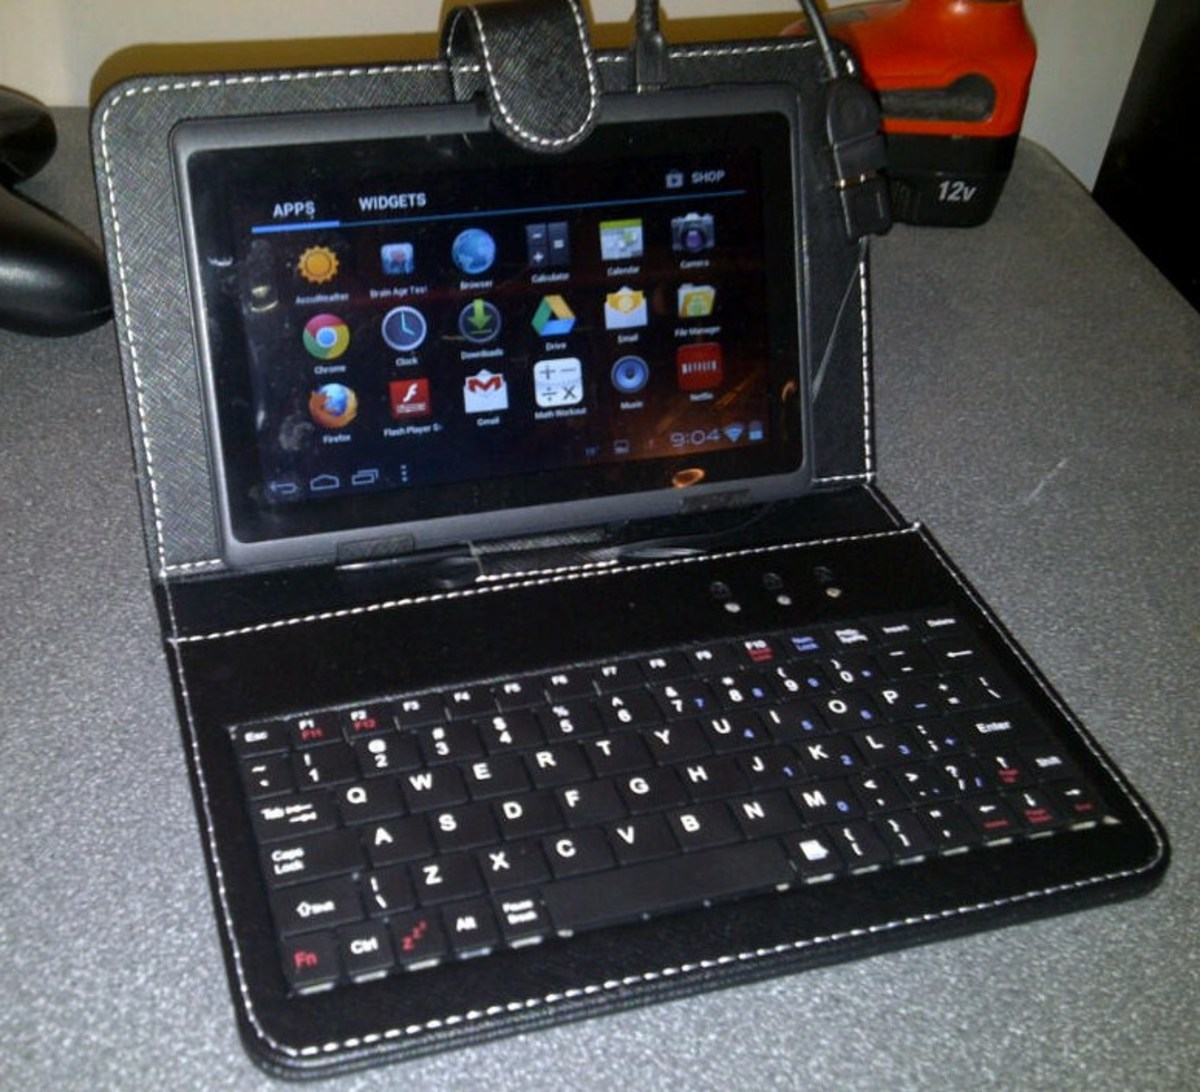 Best Cheap Android Tablets- Are Budget Tablets Under $100 Worth the Money?